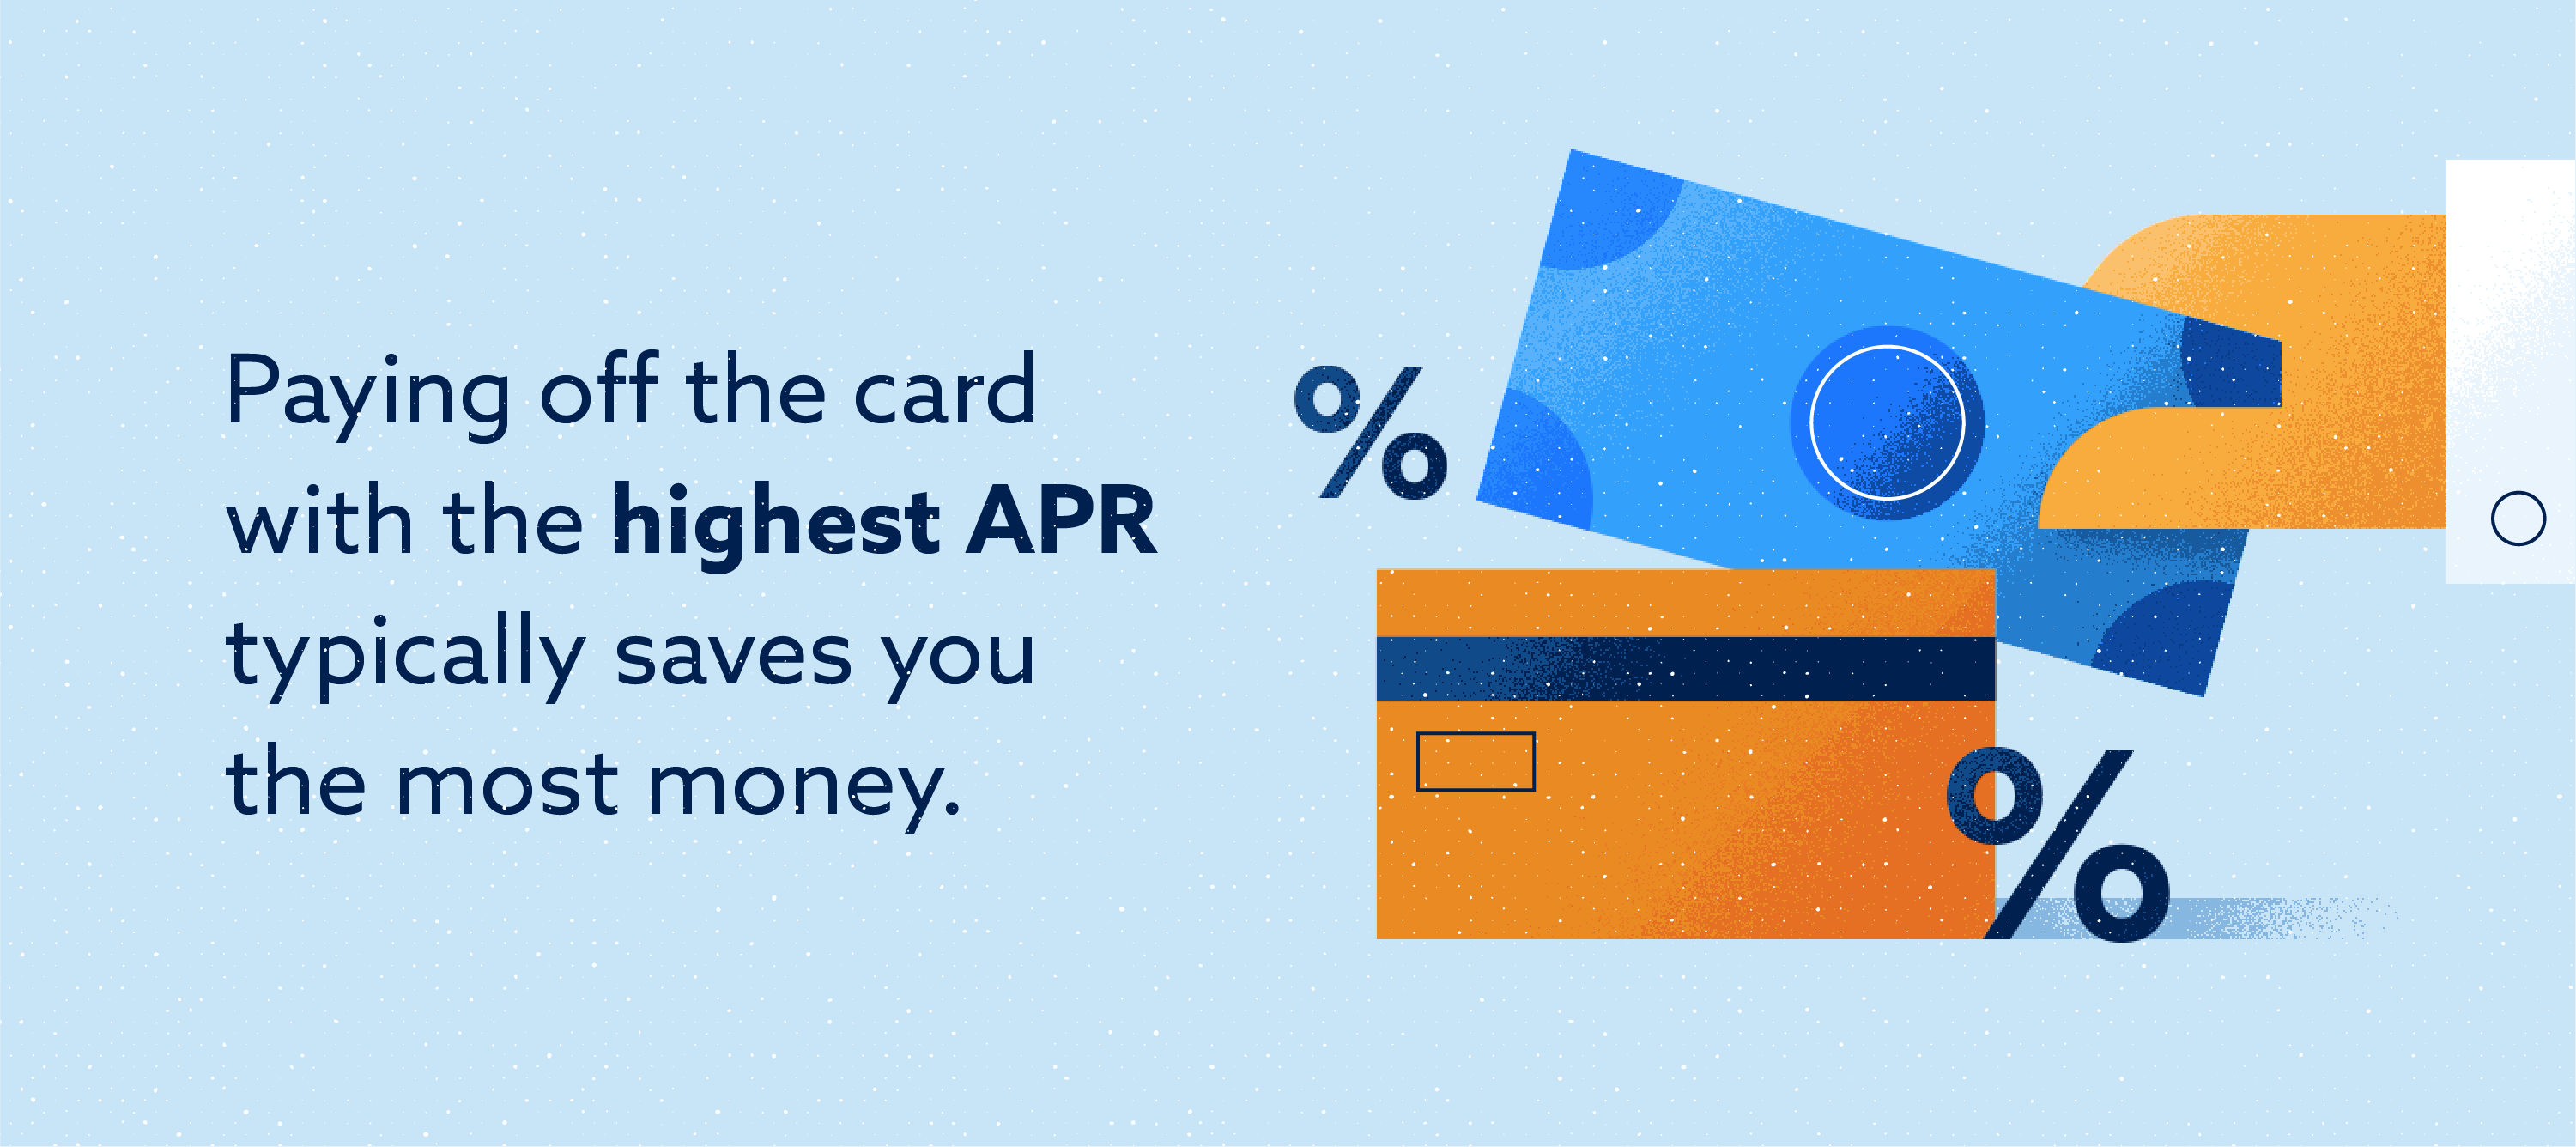 Paying off highest APR card saves the most money Image